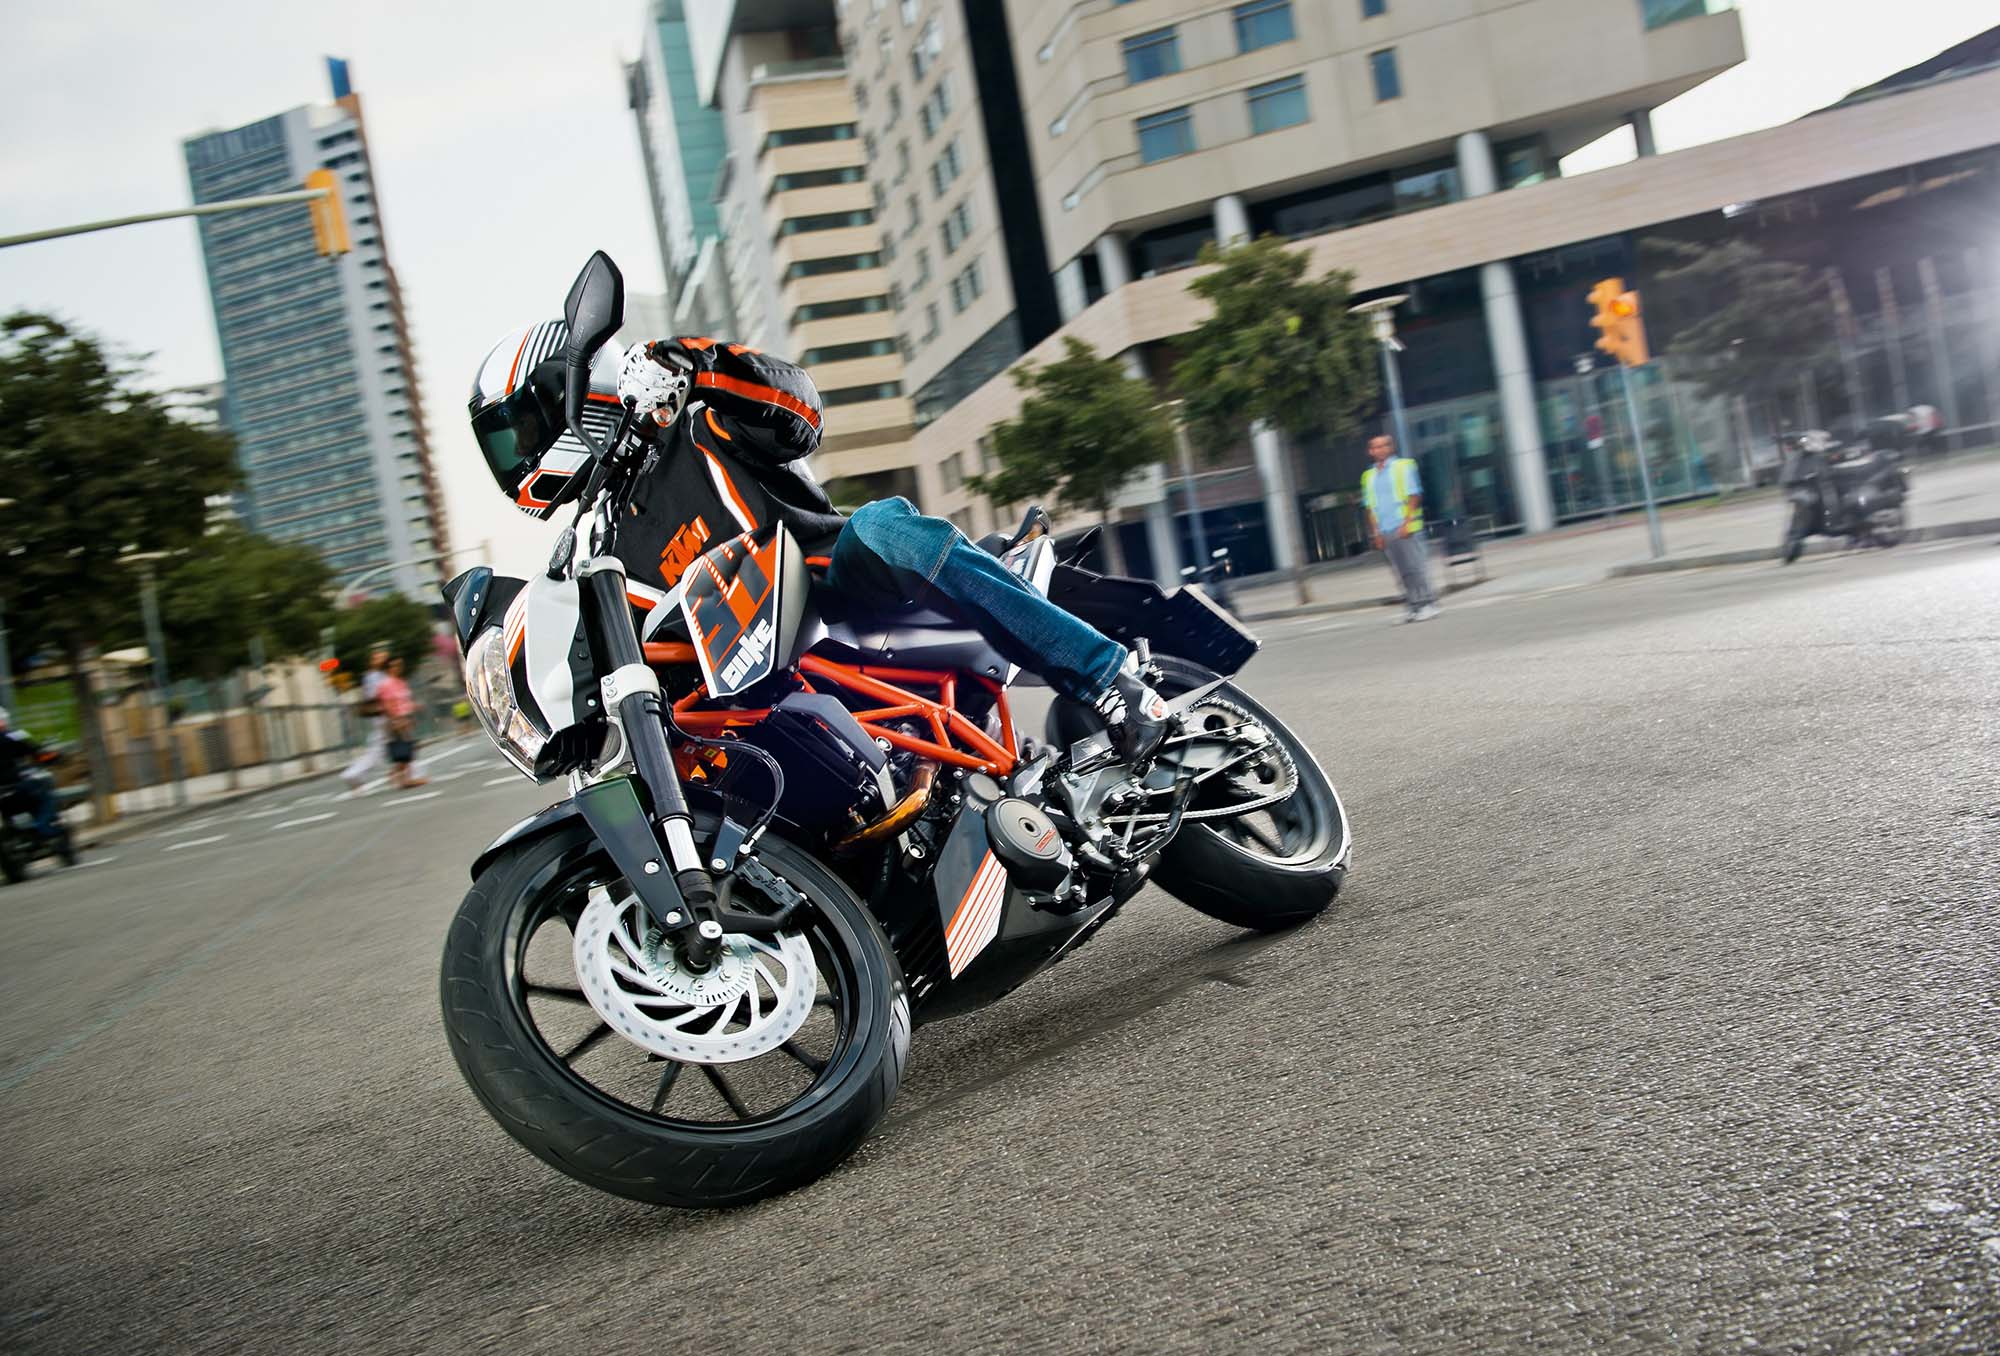 Modified KTM Duke Image, Prices